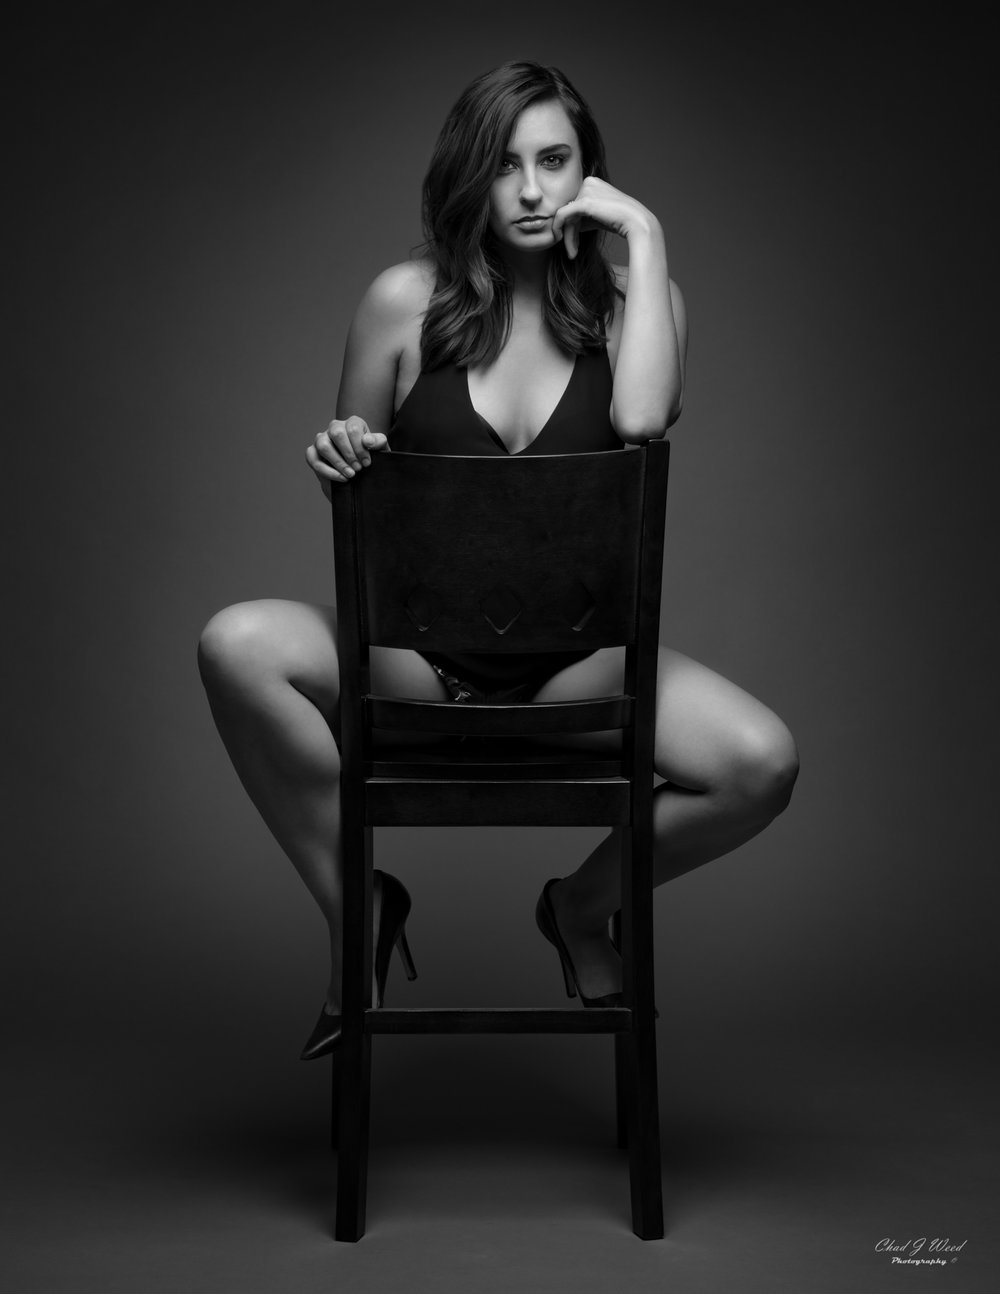 Black and White Portrait Session of Dayna by Mesa Arizona Portrait Photographer Chad Weed